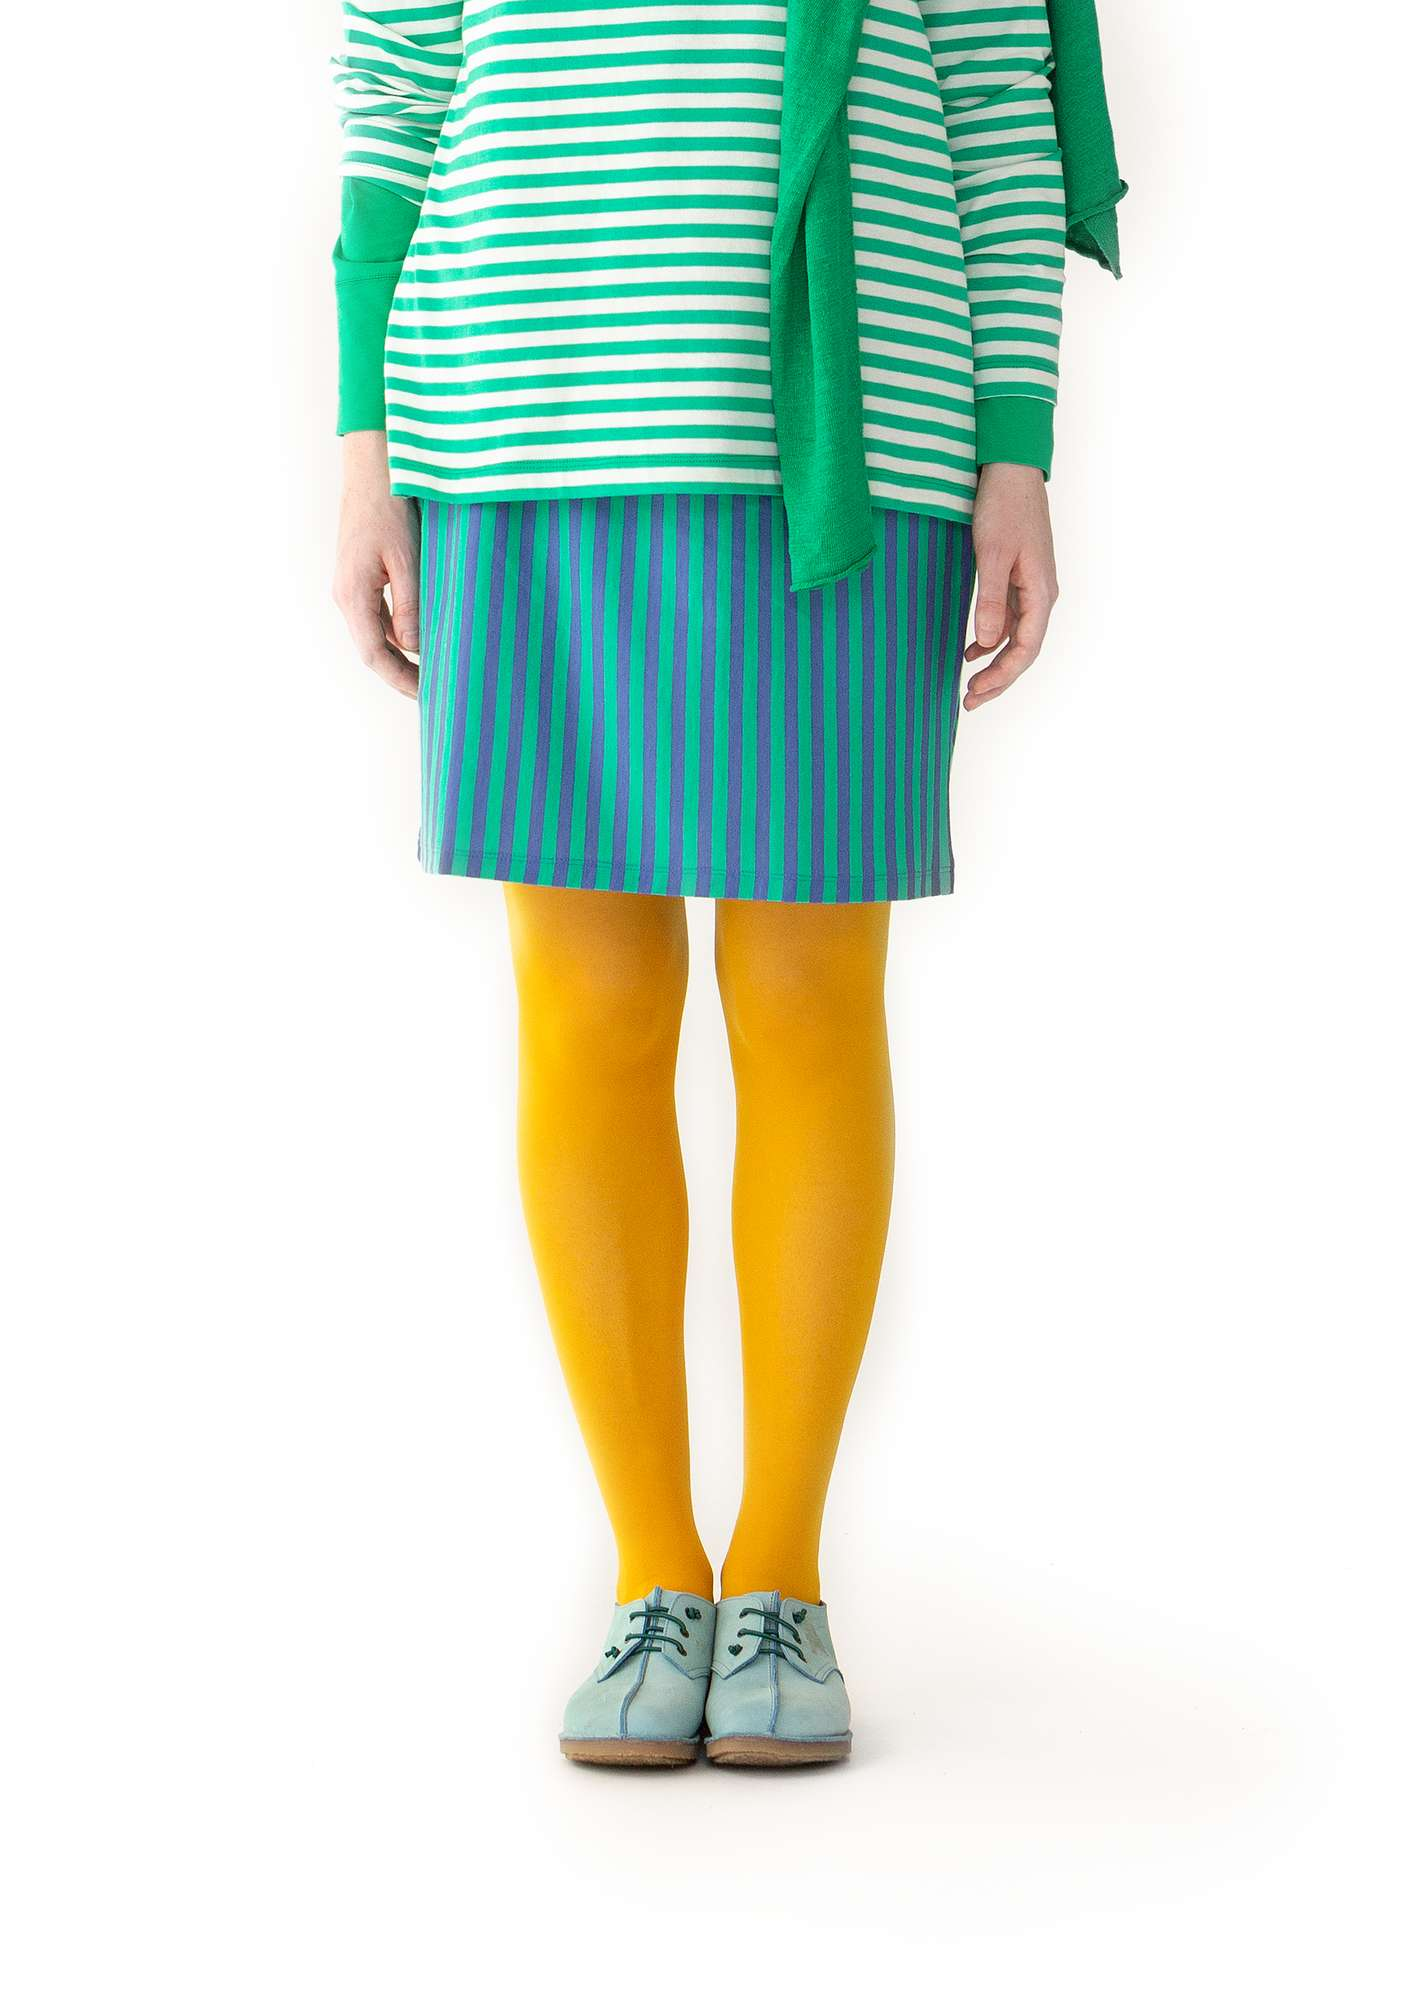 Striped skirt in organic cotton lotus green/sky blue